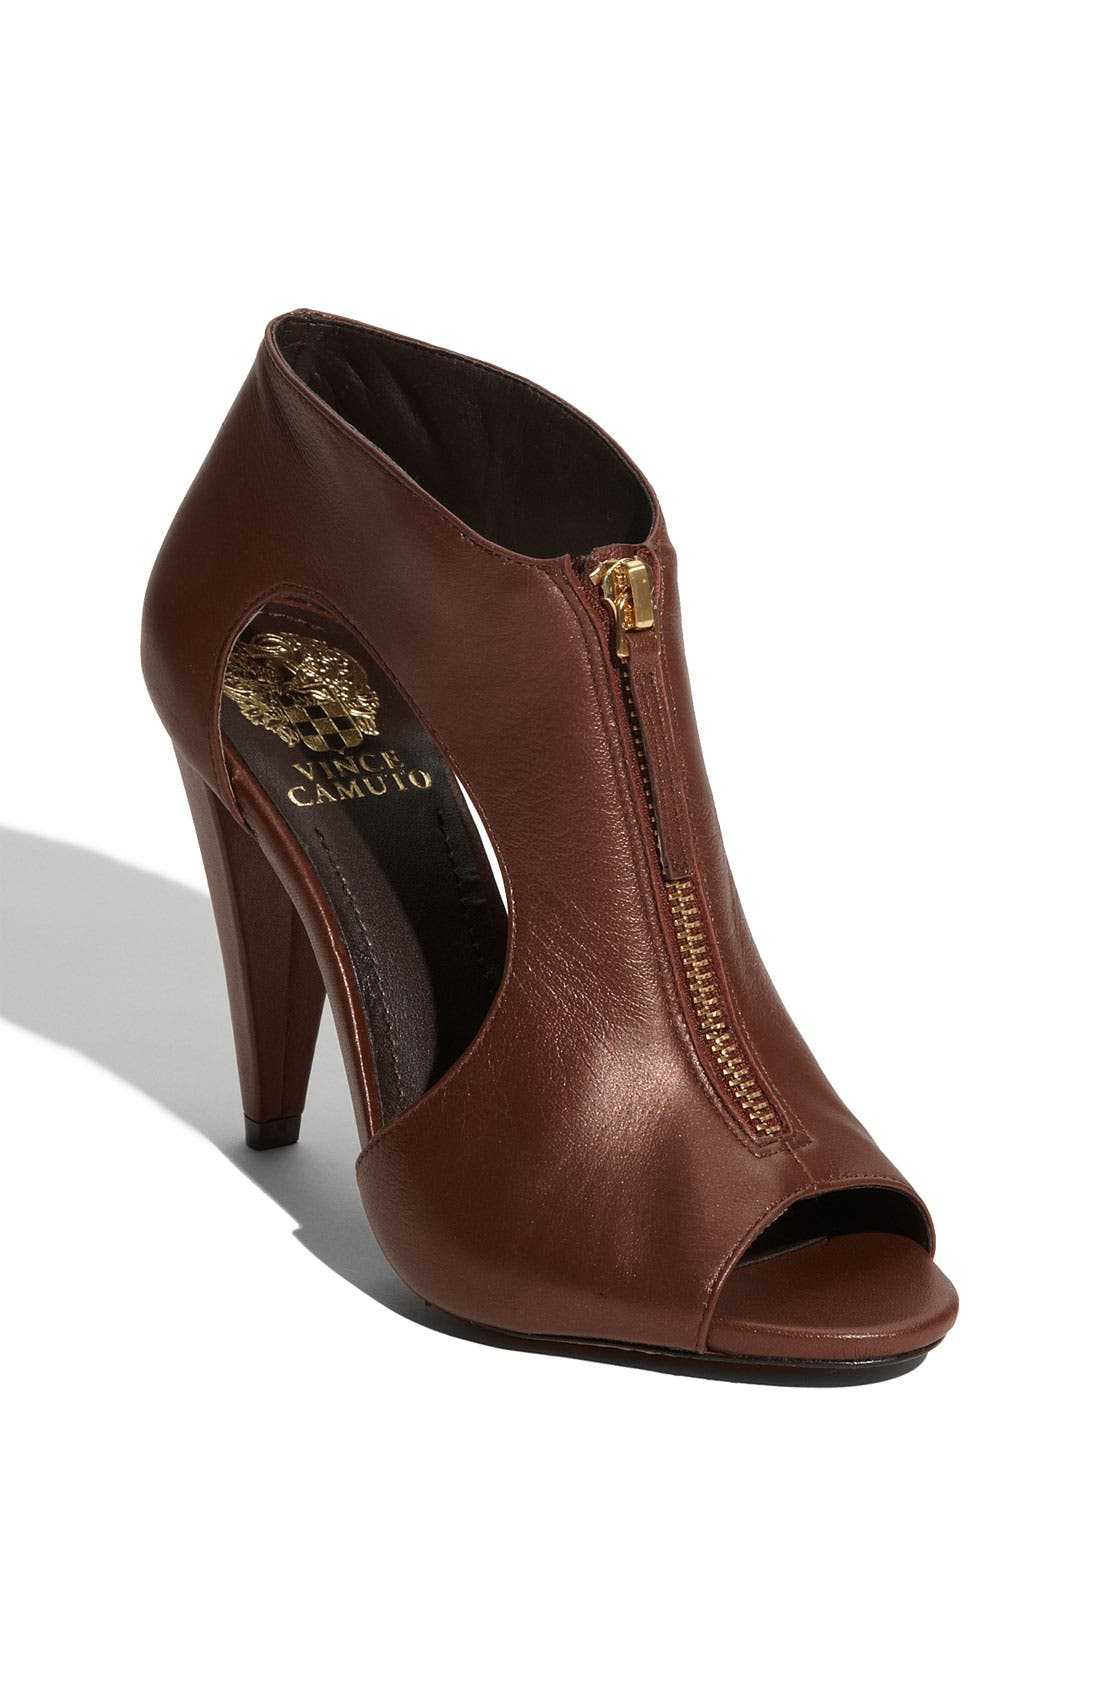 Alternate Image 1 Selected - Vince Camuto 'Ashleigh' Bootie